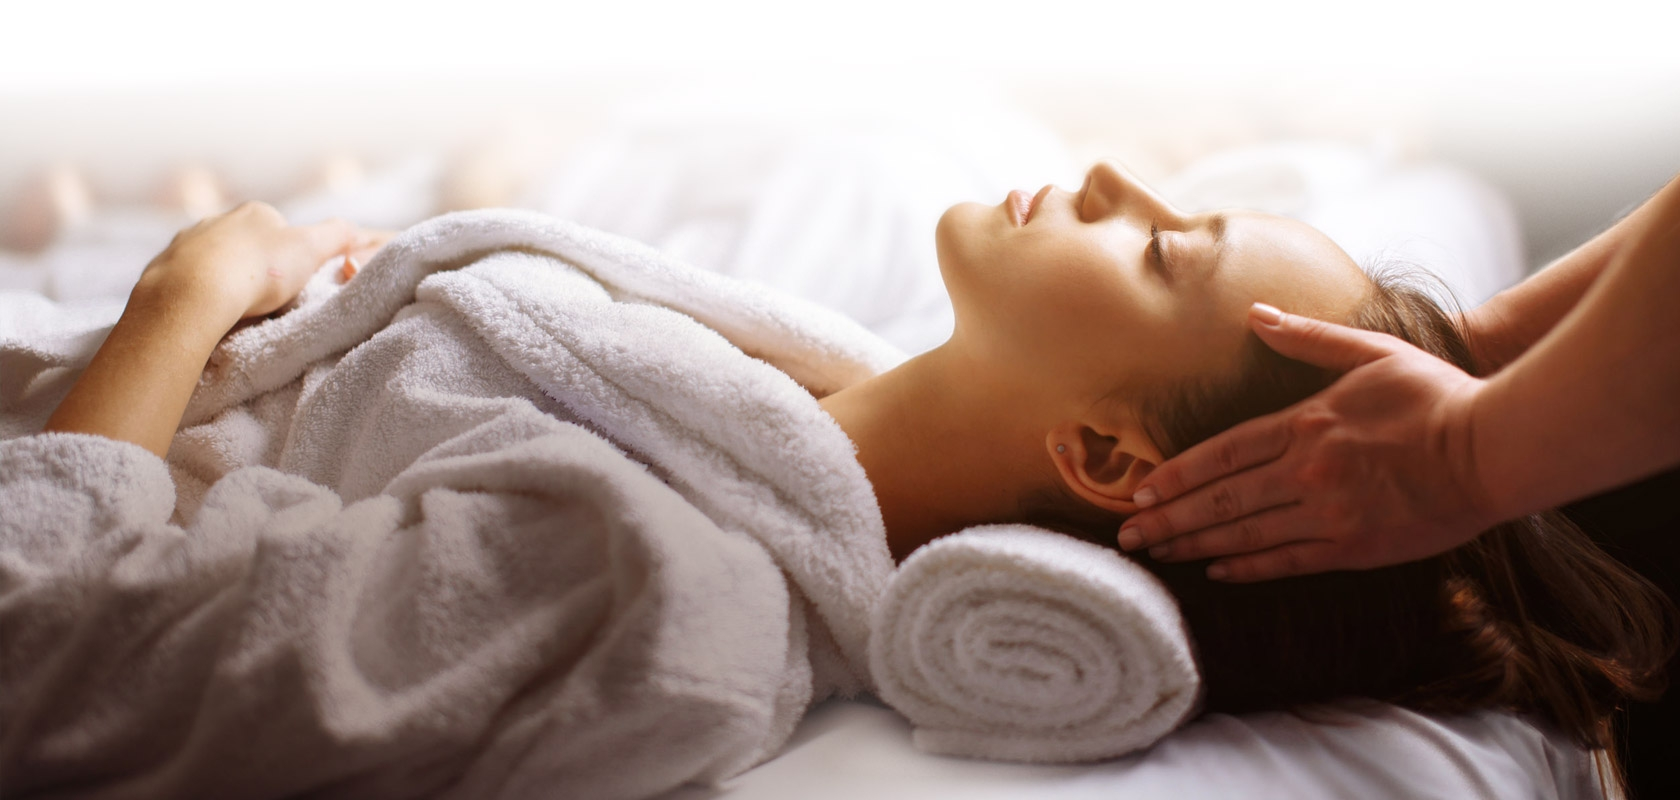 Relax, Revive and Rejuvenate - Merle Norman